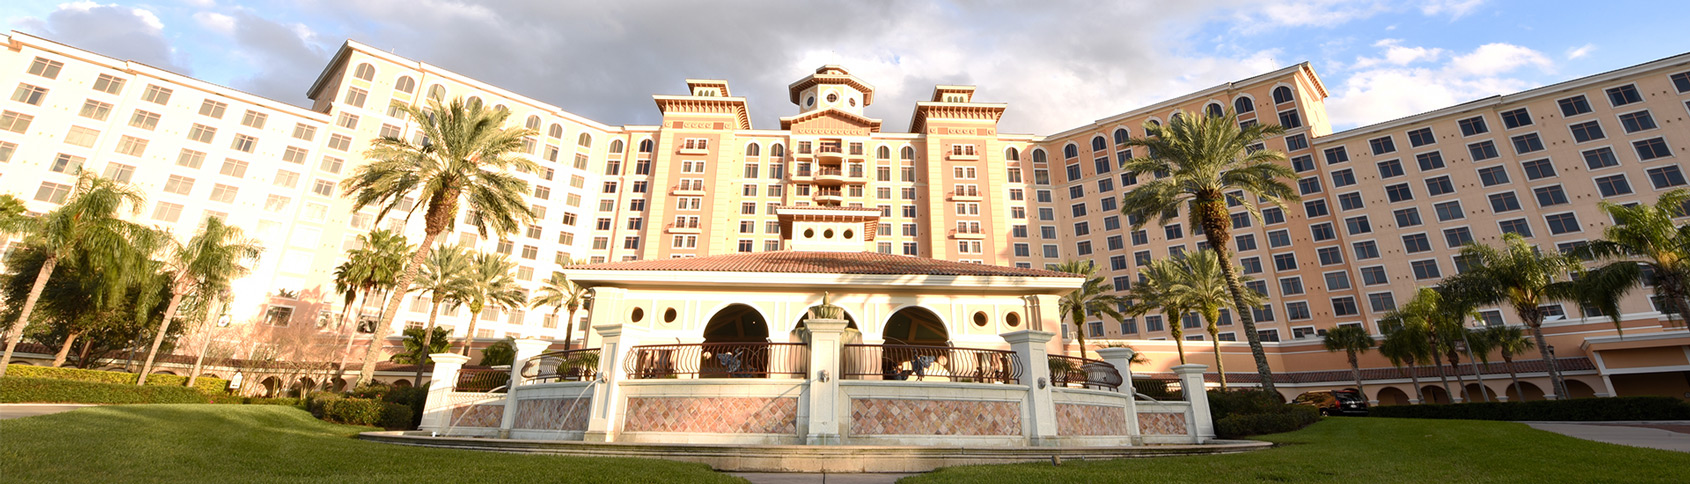 Top Orlando Hotel Connects More Than 4000 Associates